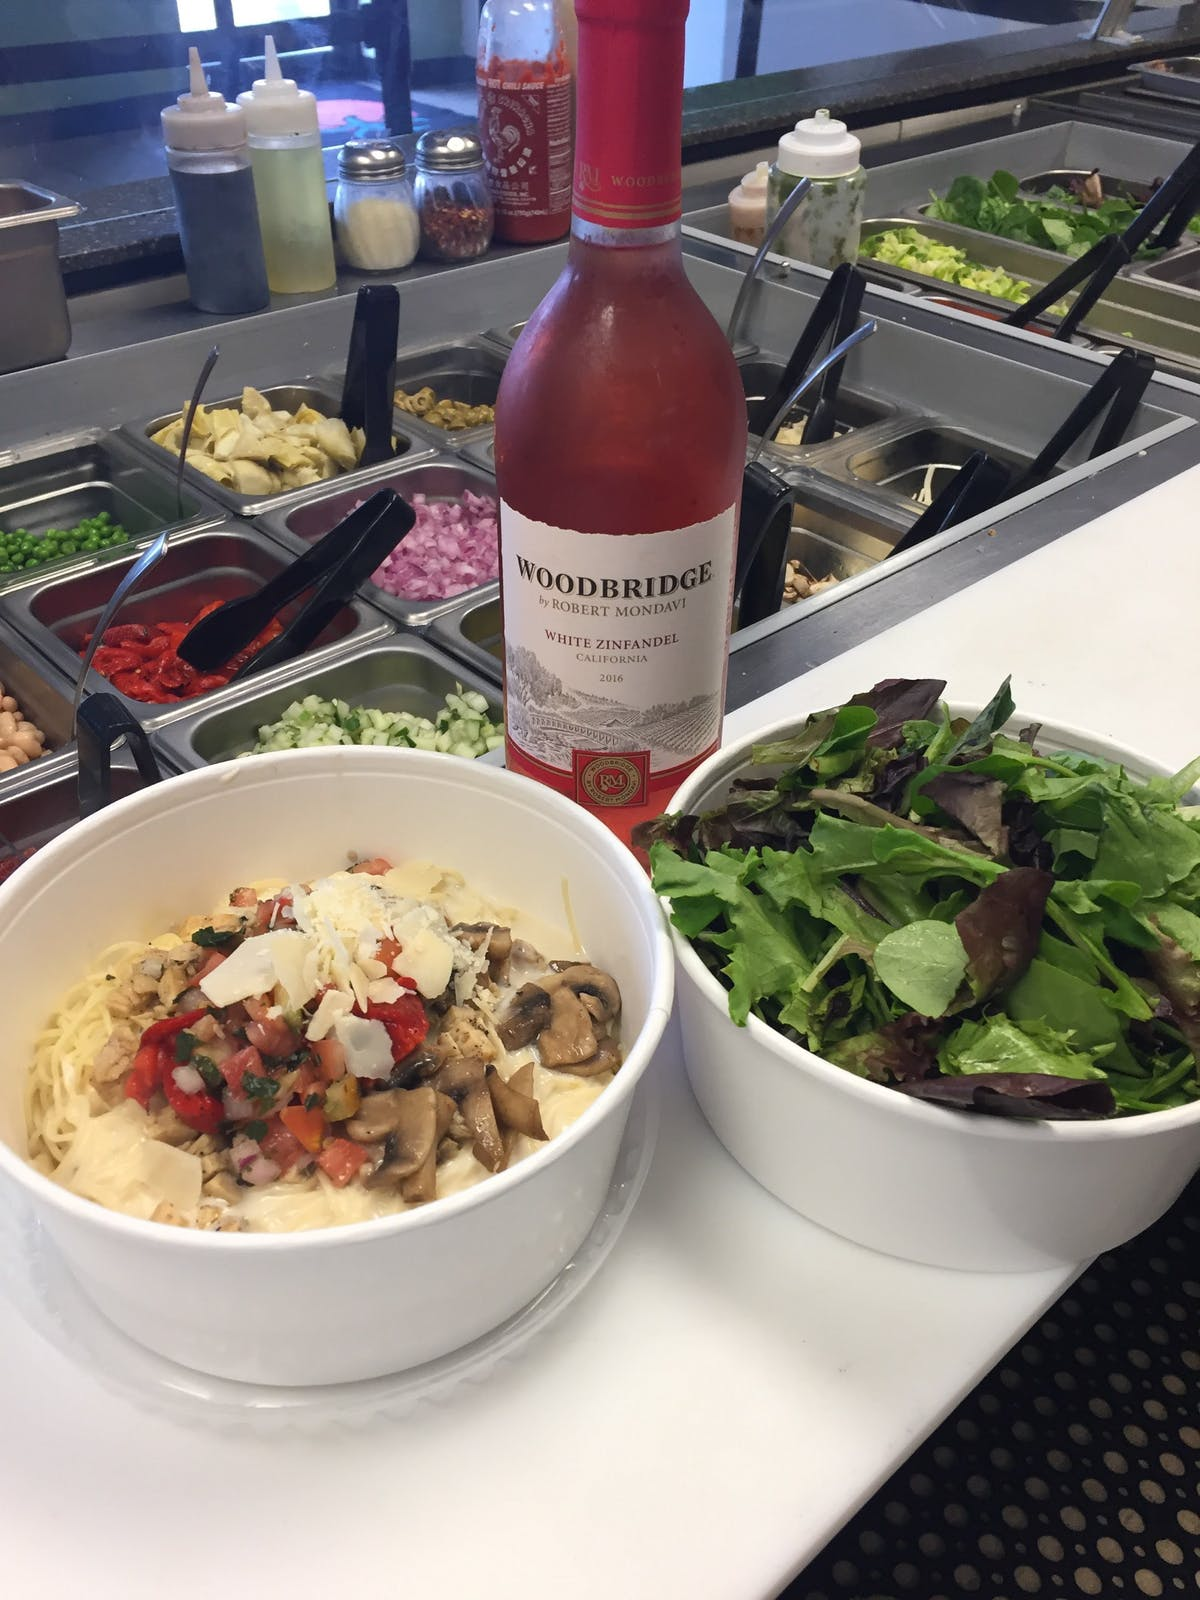 a bowl of salad and a bottle of wine